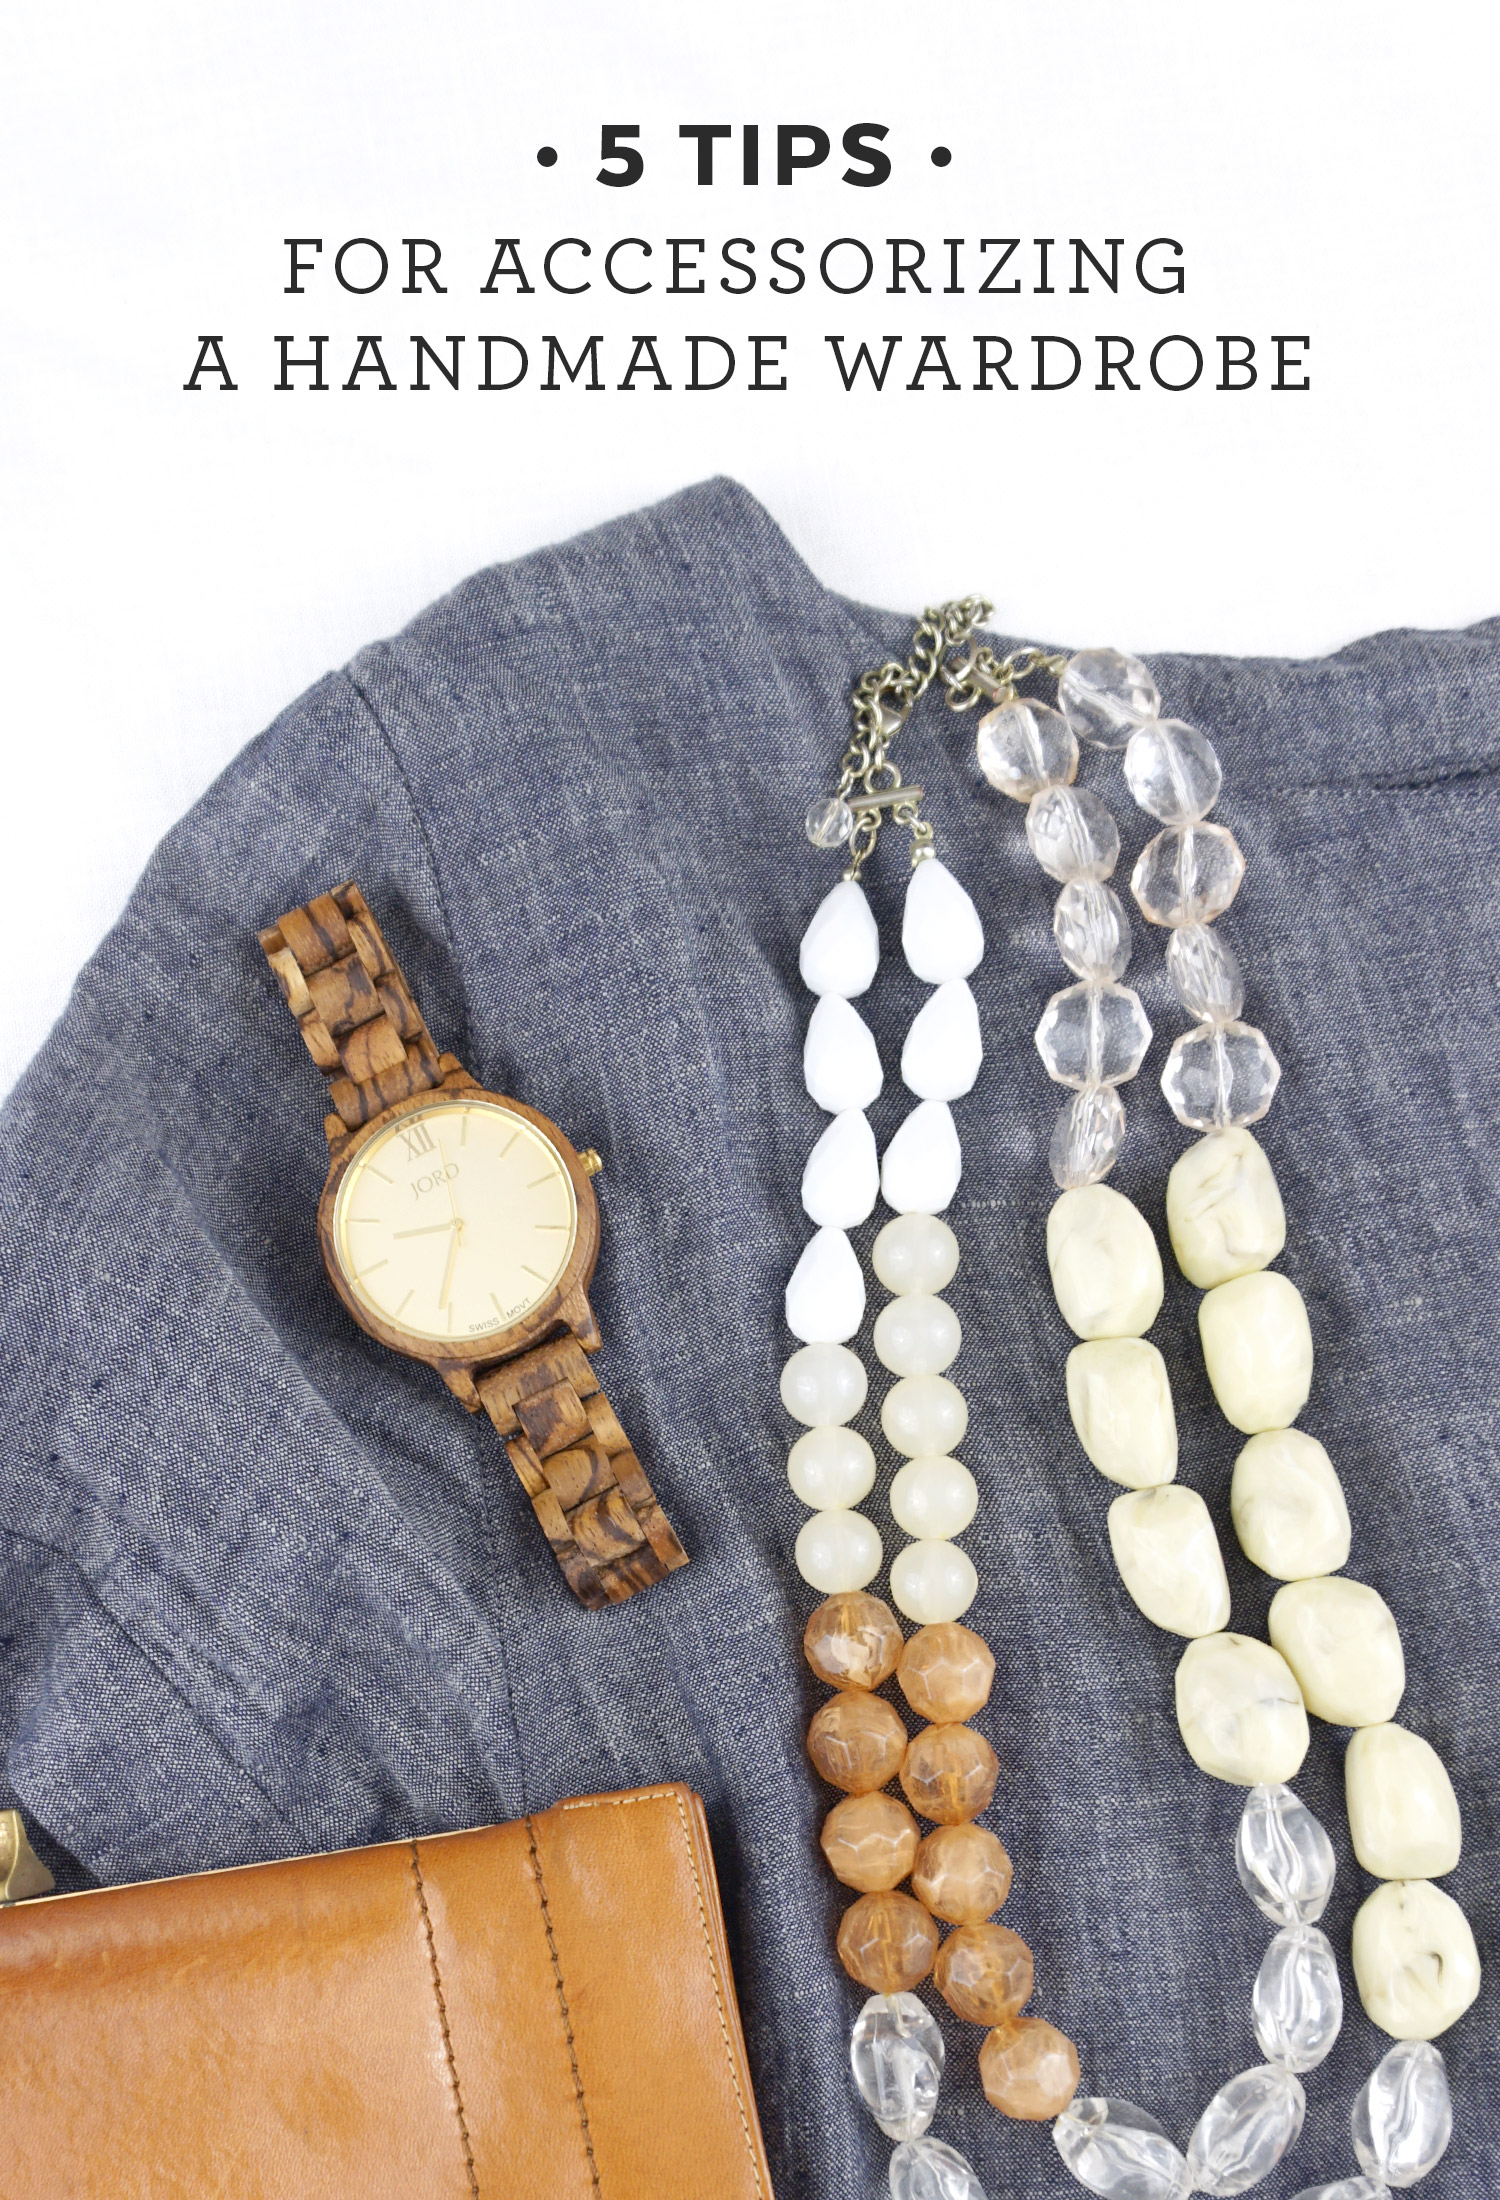 5 Tips for Accessorizing a Handmade Wardrobe | Sew DIY